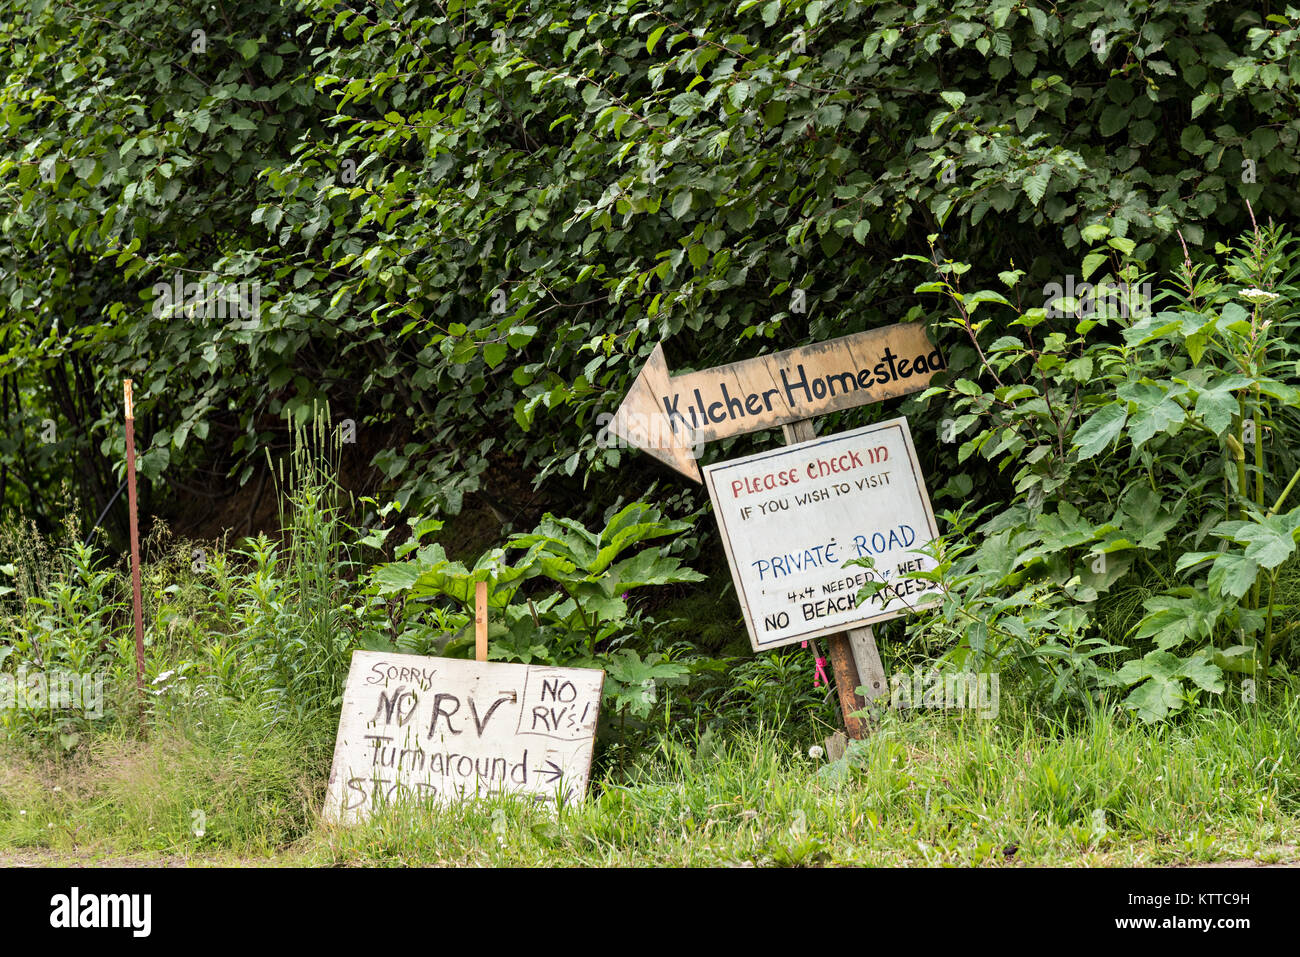 Signs for the Kilcher Homestead in remote Fritz Creek, Alaska. The on